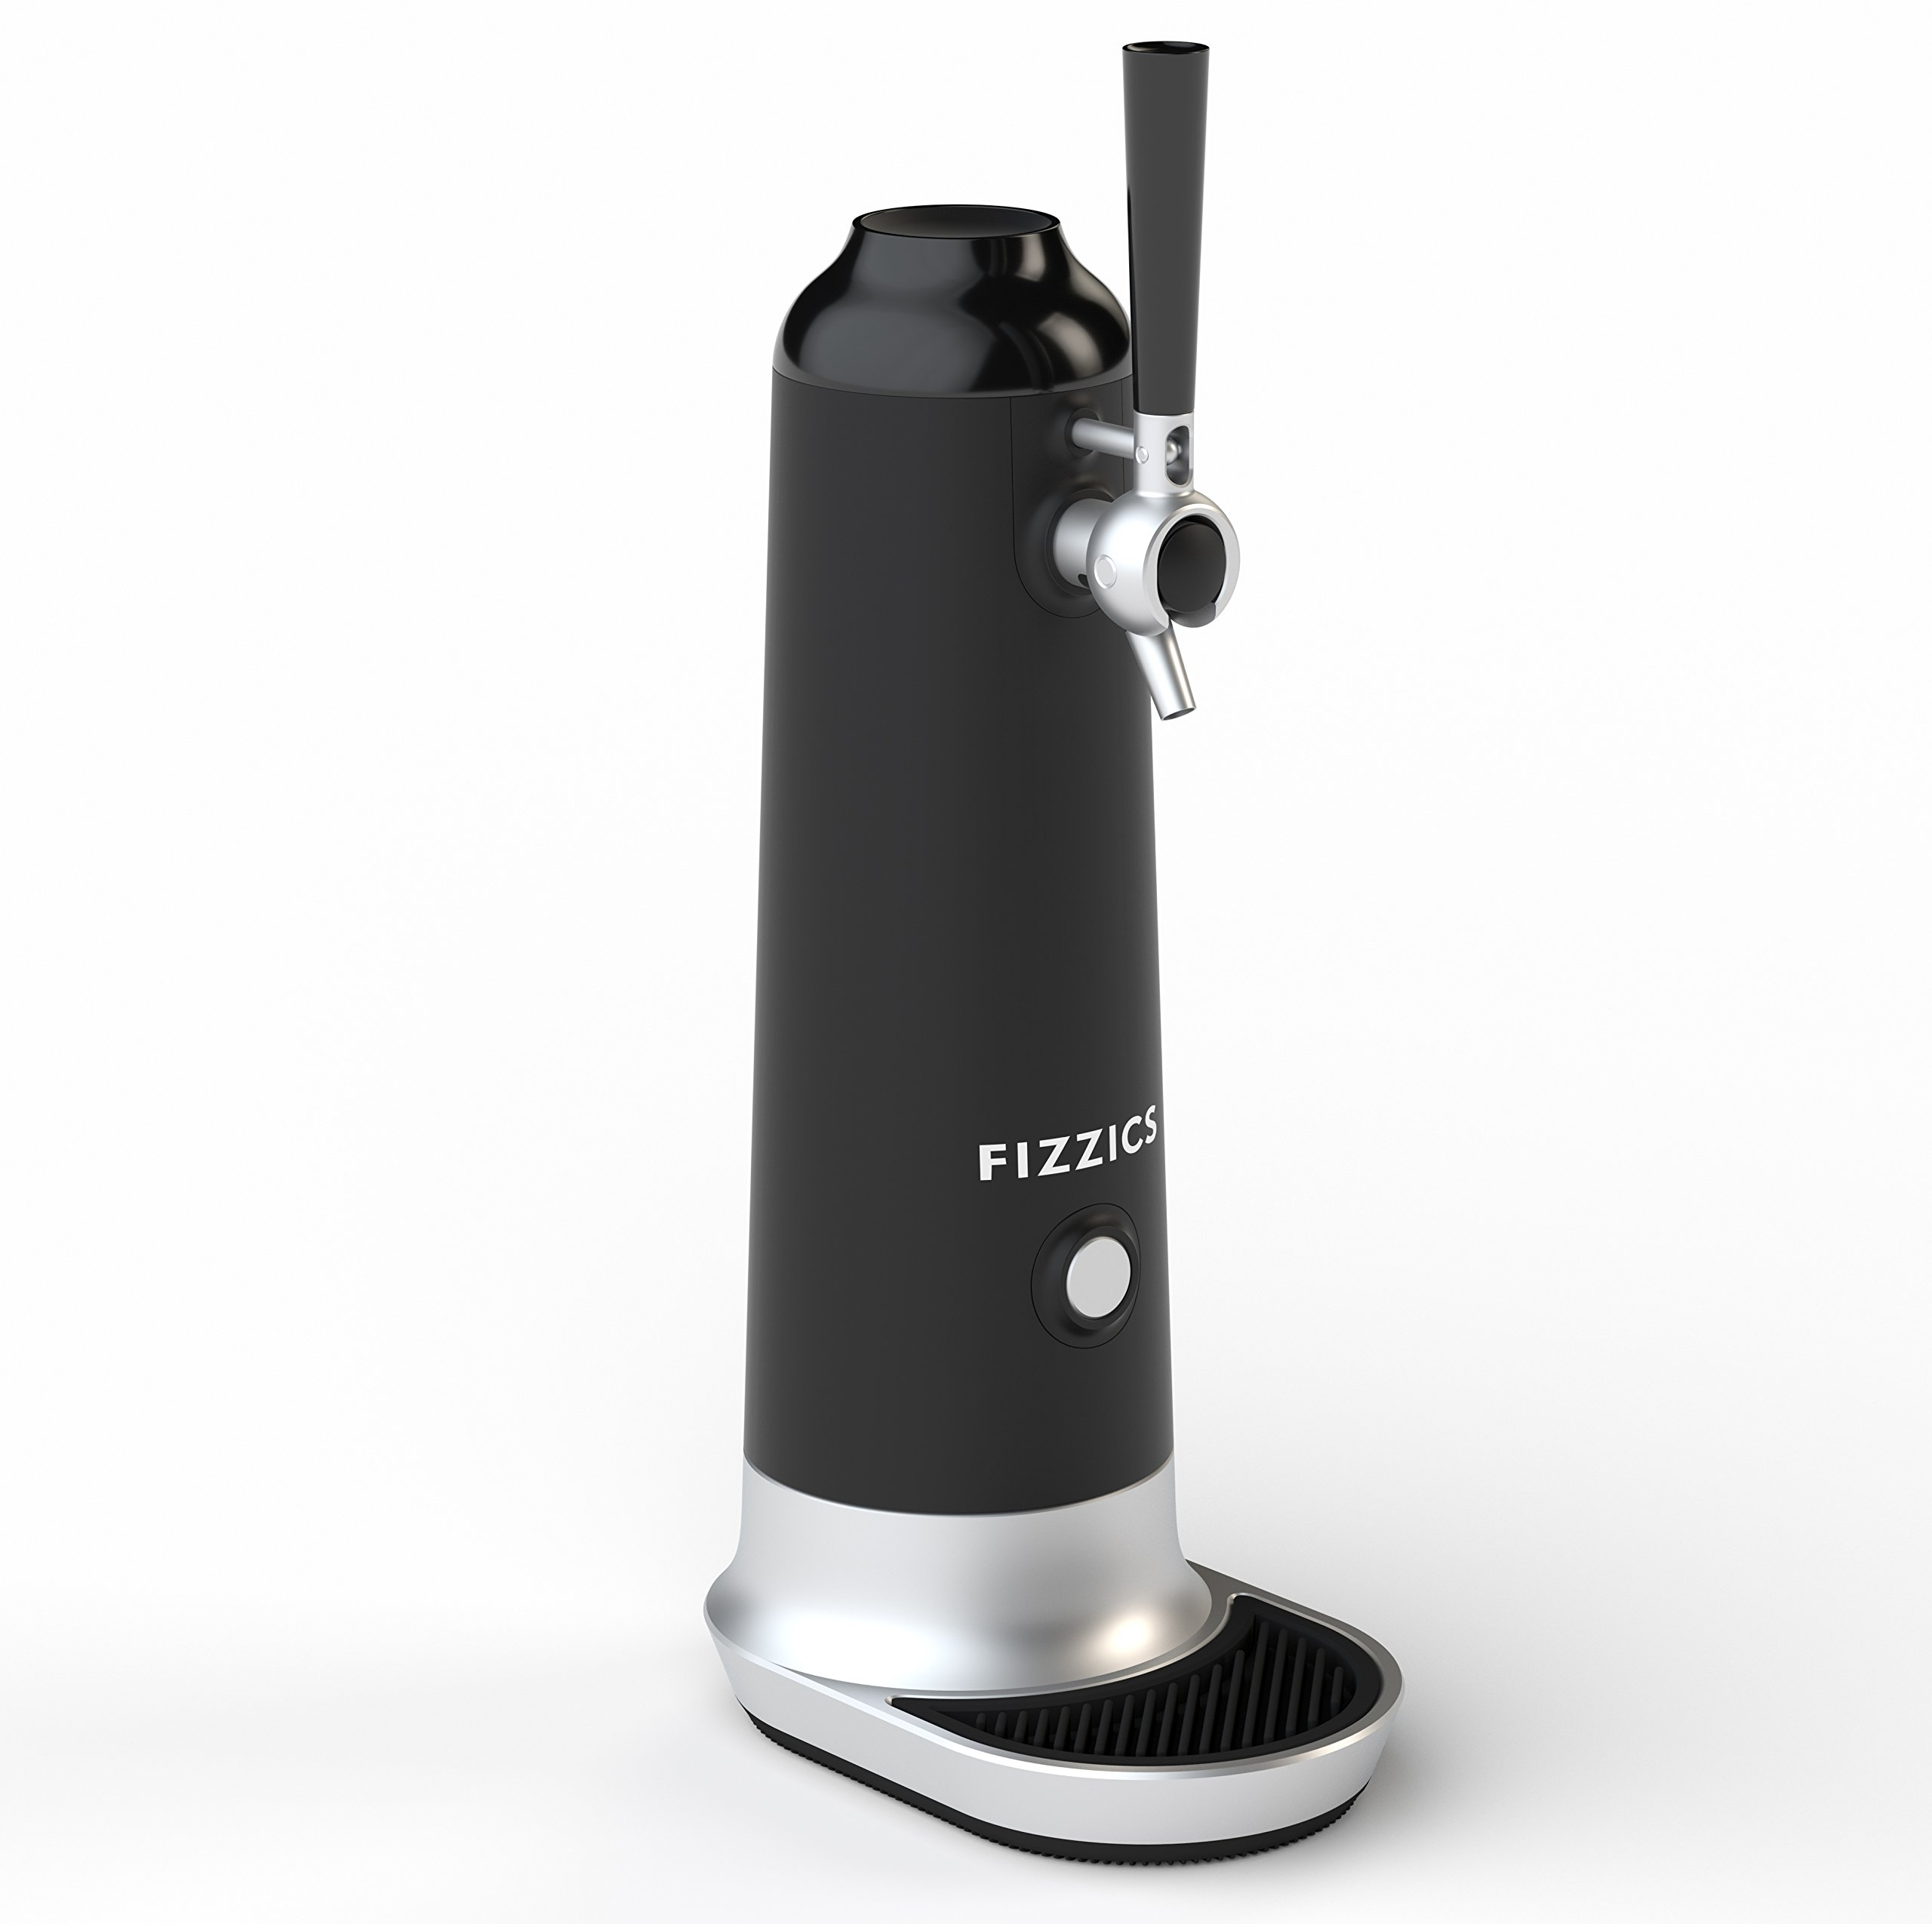 Fizzics Waytap Beer Dispenser